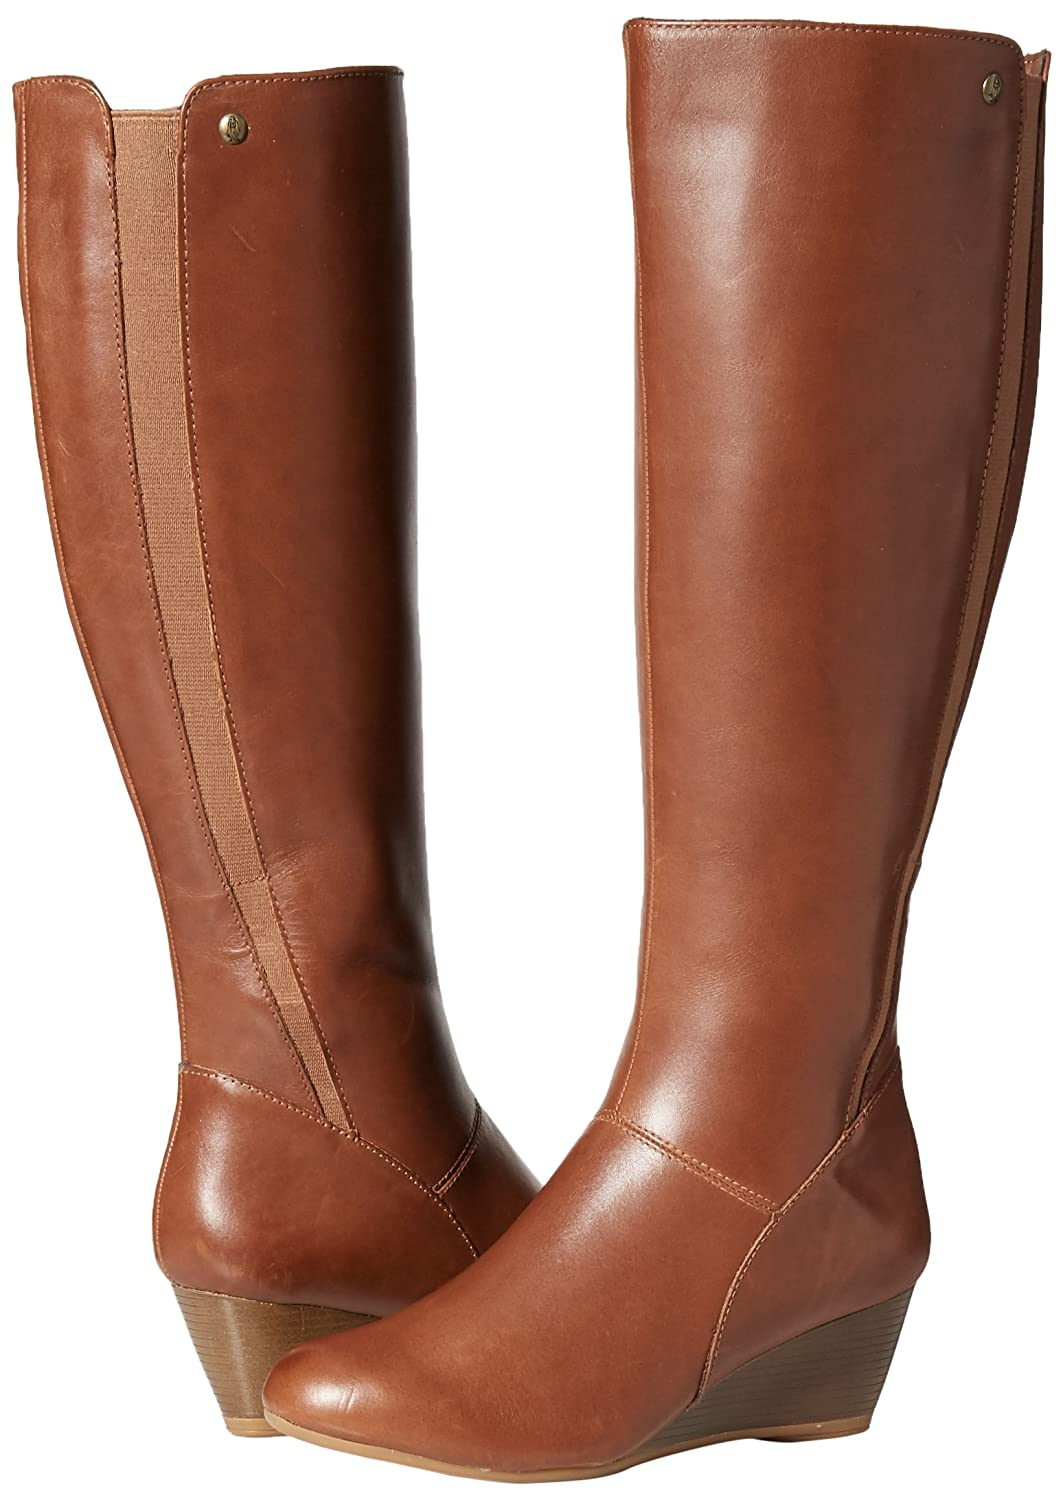 Hush Puppies Women's Pynical US|Tan Rhea Boot B01AODW2LM 5.5 B(M) US|Tan Pynical Leather 74572b